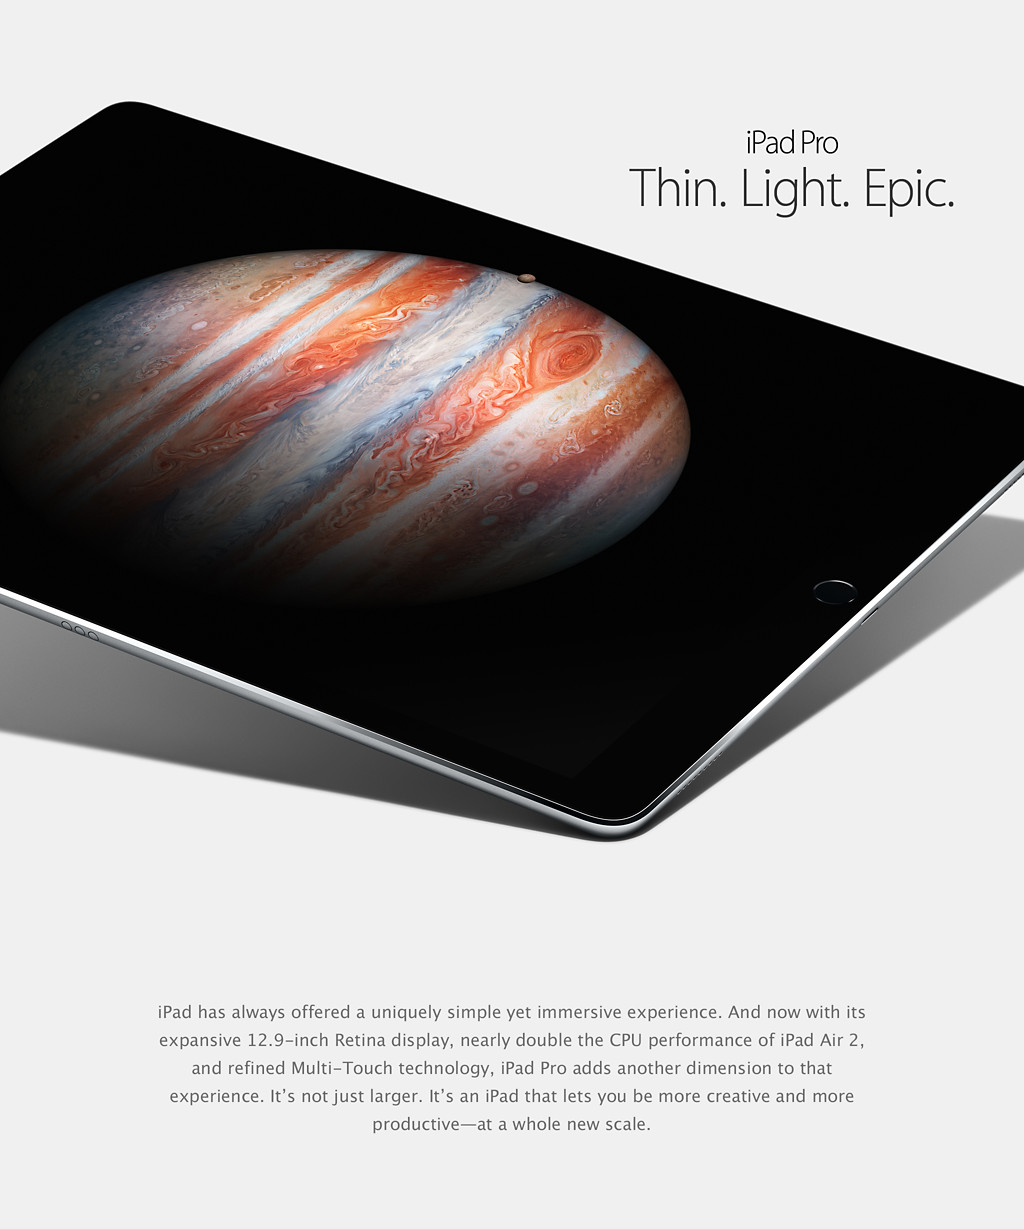 iPad Pro. Thin. Light. Epic. iPad has always offered a uniquely simple yet immersive experience. And now with its expansive 12.9-inch Retina display, nearly double the CPU performance of iPad Air 2, and refined Multi-Touch technology, iPad Pro adds another dimension to that experience. It's not just larger. It's an iPad that lets you be more creative and more productive—at a whole new scale.